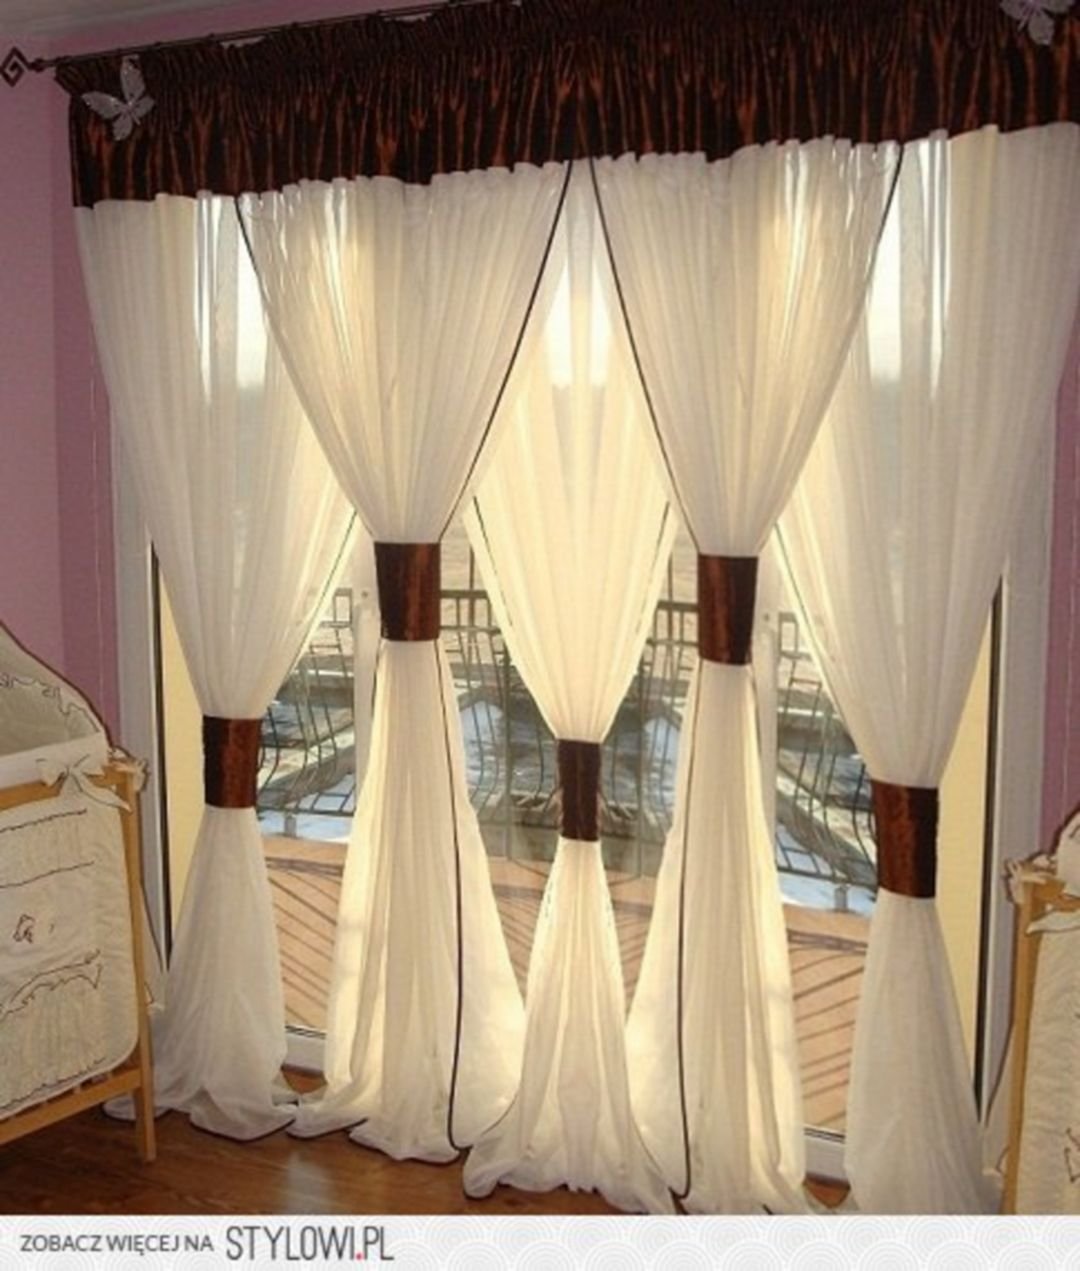 90 Beautiful Colorful Curtain Ideas To Make Amazing Scenery In